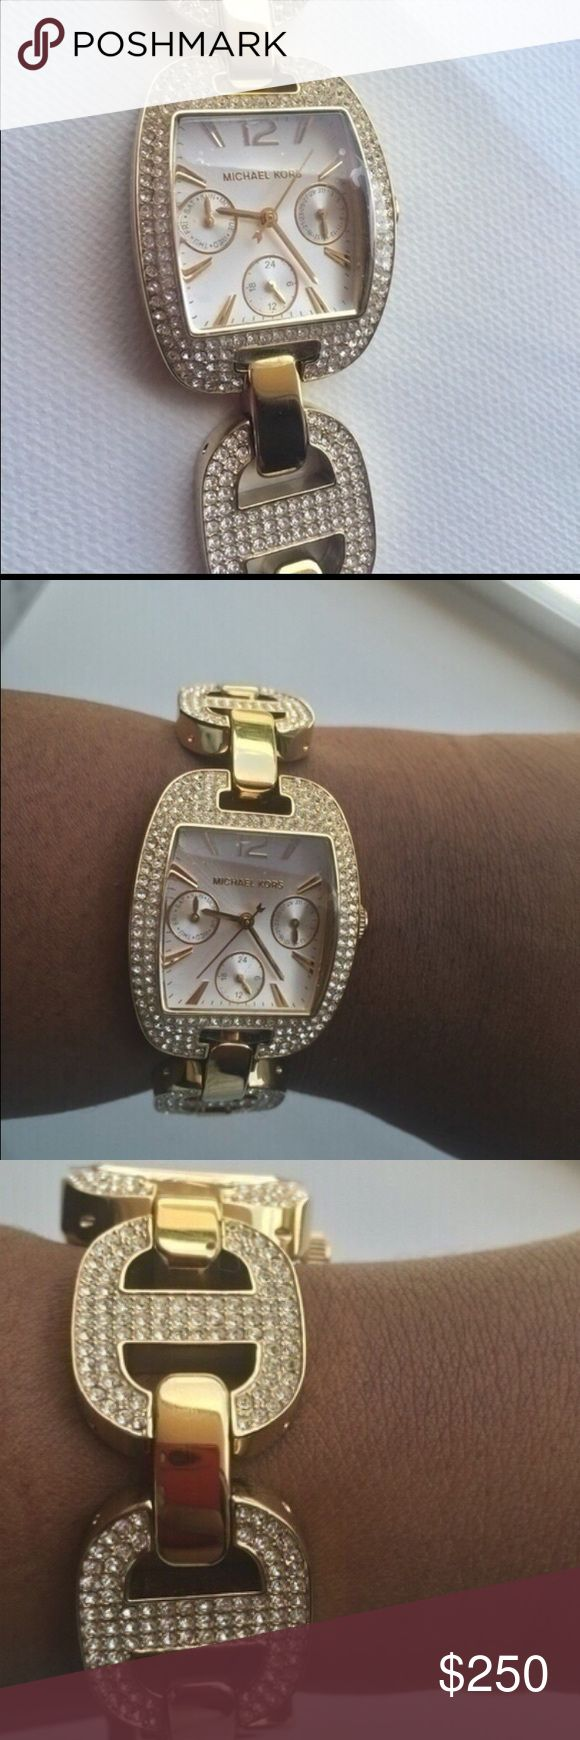 Michael Kors Glitz Watch NWOT !!! Pave crystal encrusted gold tone stainless steel. Chronograph with a day and date calendar. 28 millimeter case with an analog display. Emma watch bezel   The tag isn't attached but the plastic is still covering the face and back. Brand new authentic with the box and booklet. 100% Authentic❌❌No Trades‼️ Michael Kors Accessories Watches